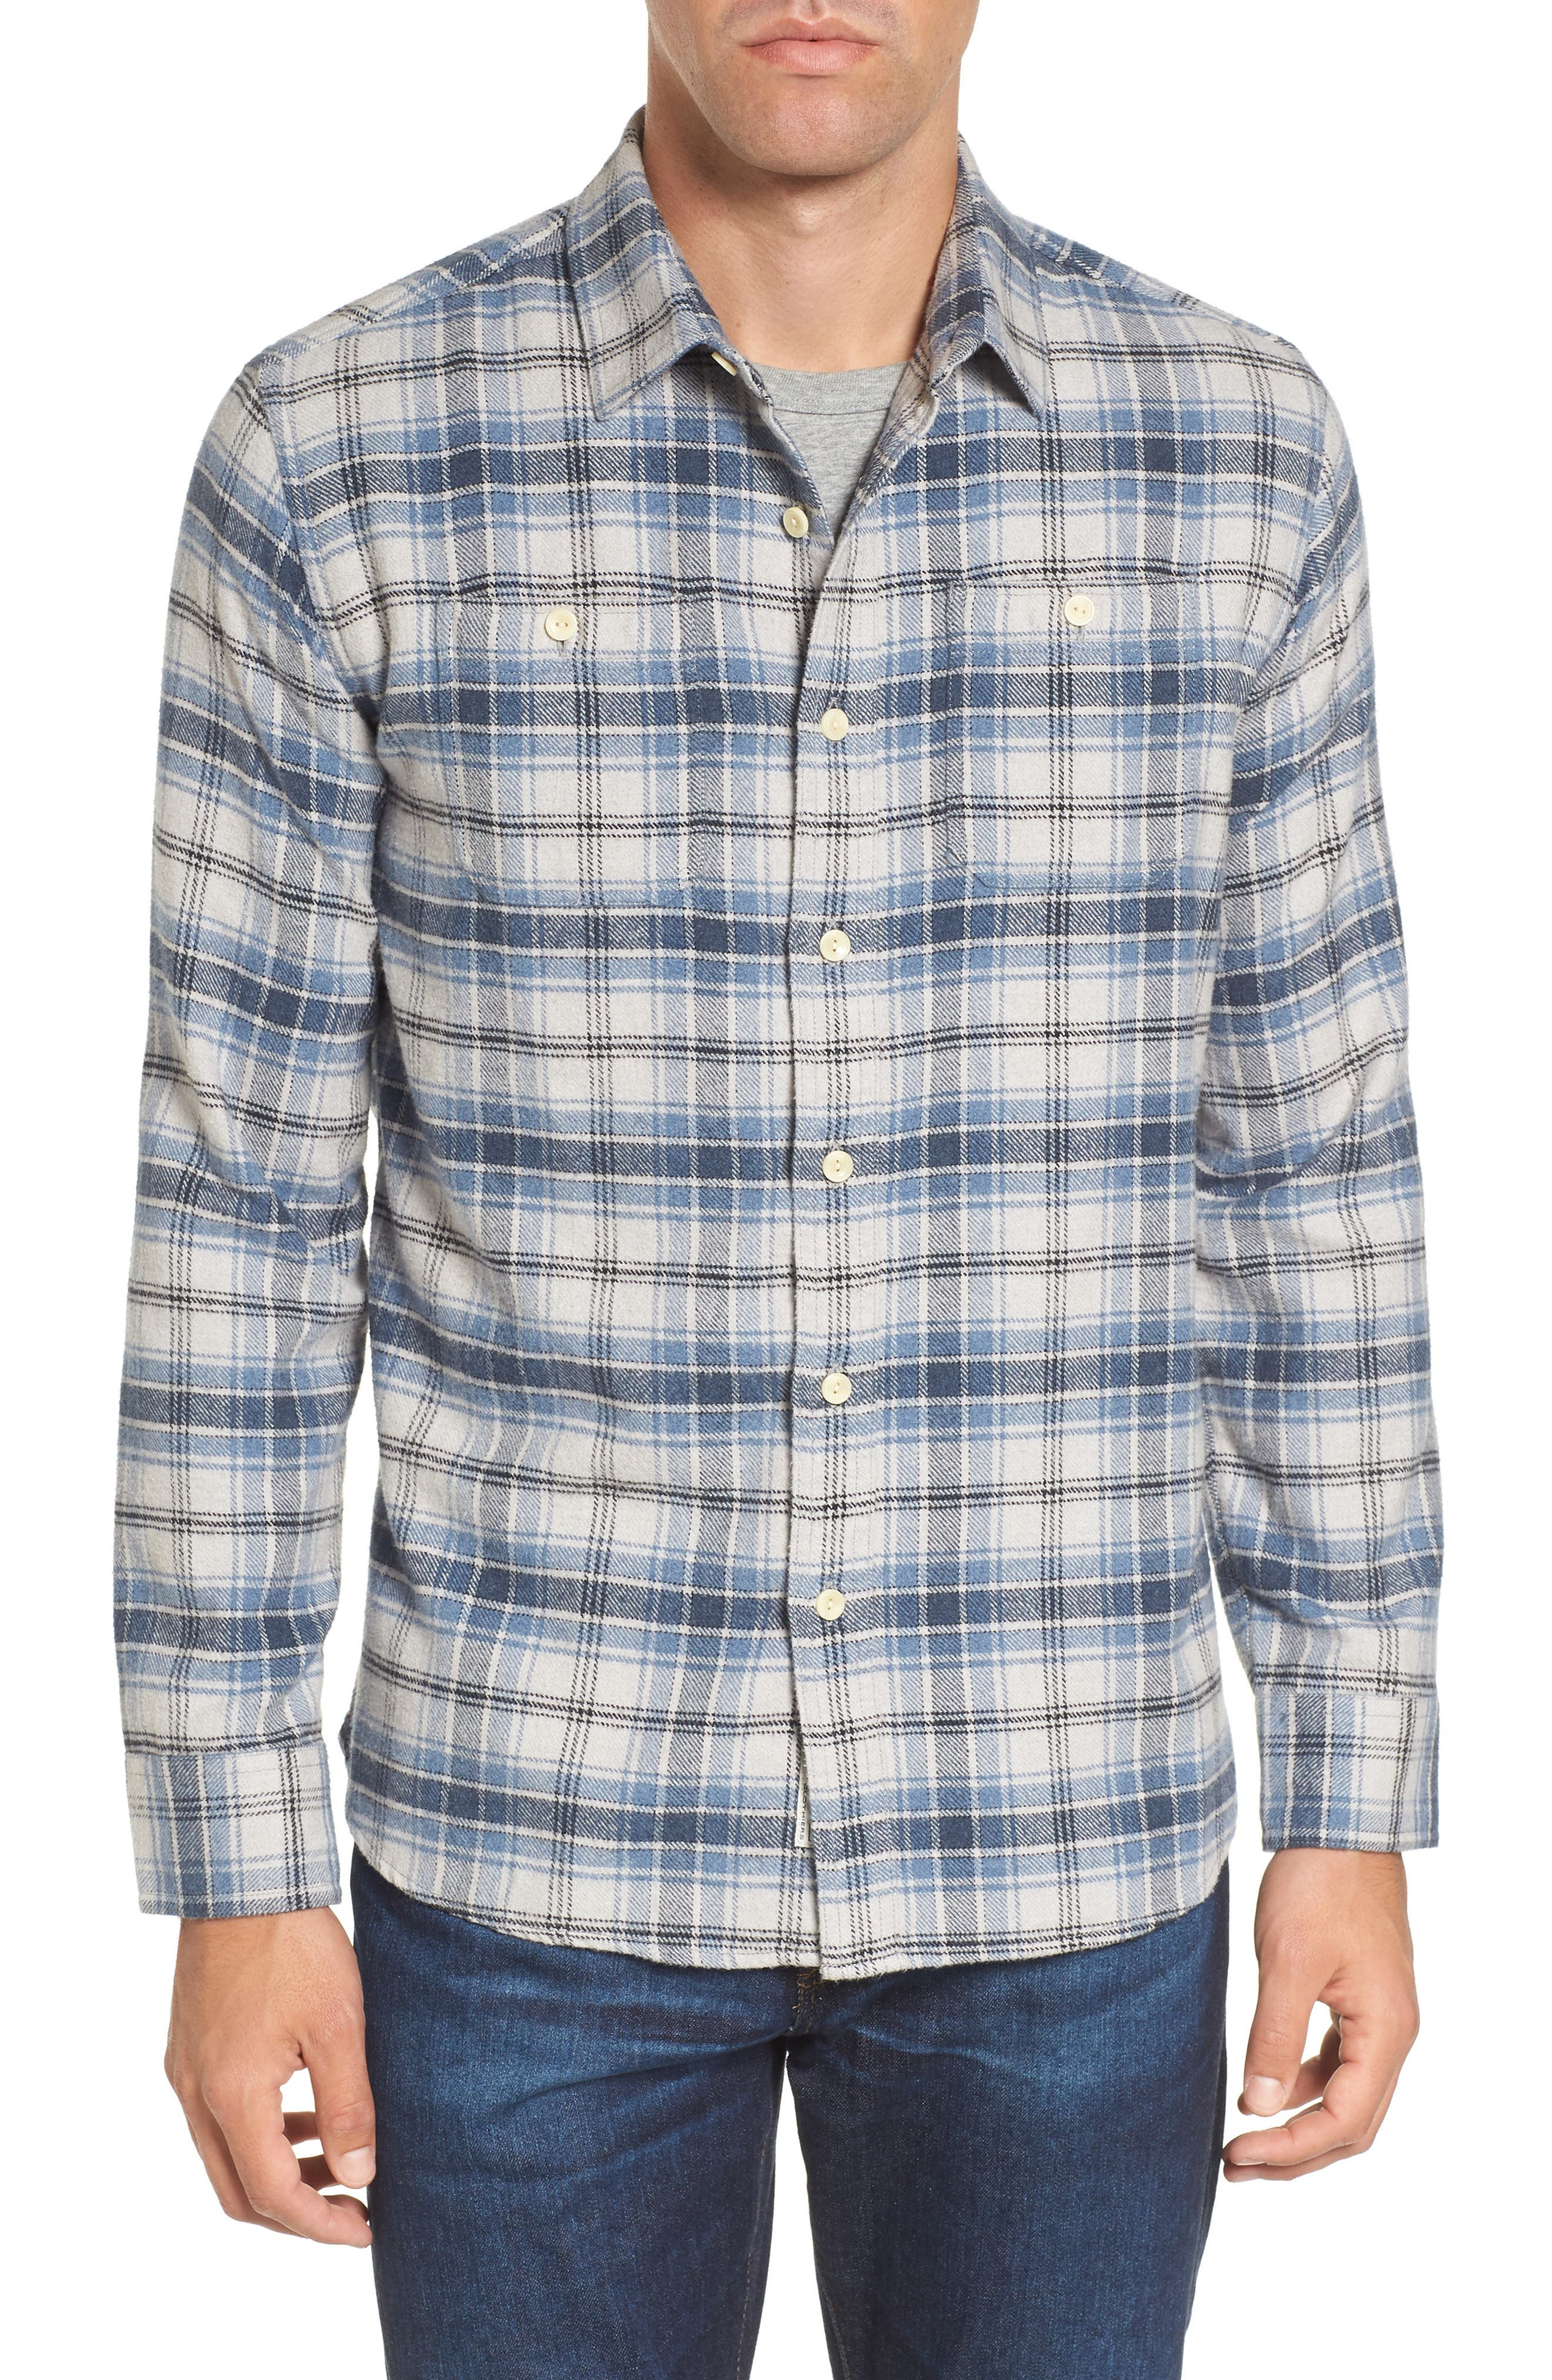 Campton Heritage Plaid Flannel Shirt,                         Main,                         color, Blue Stone